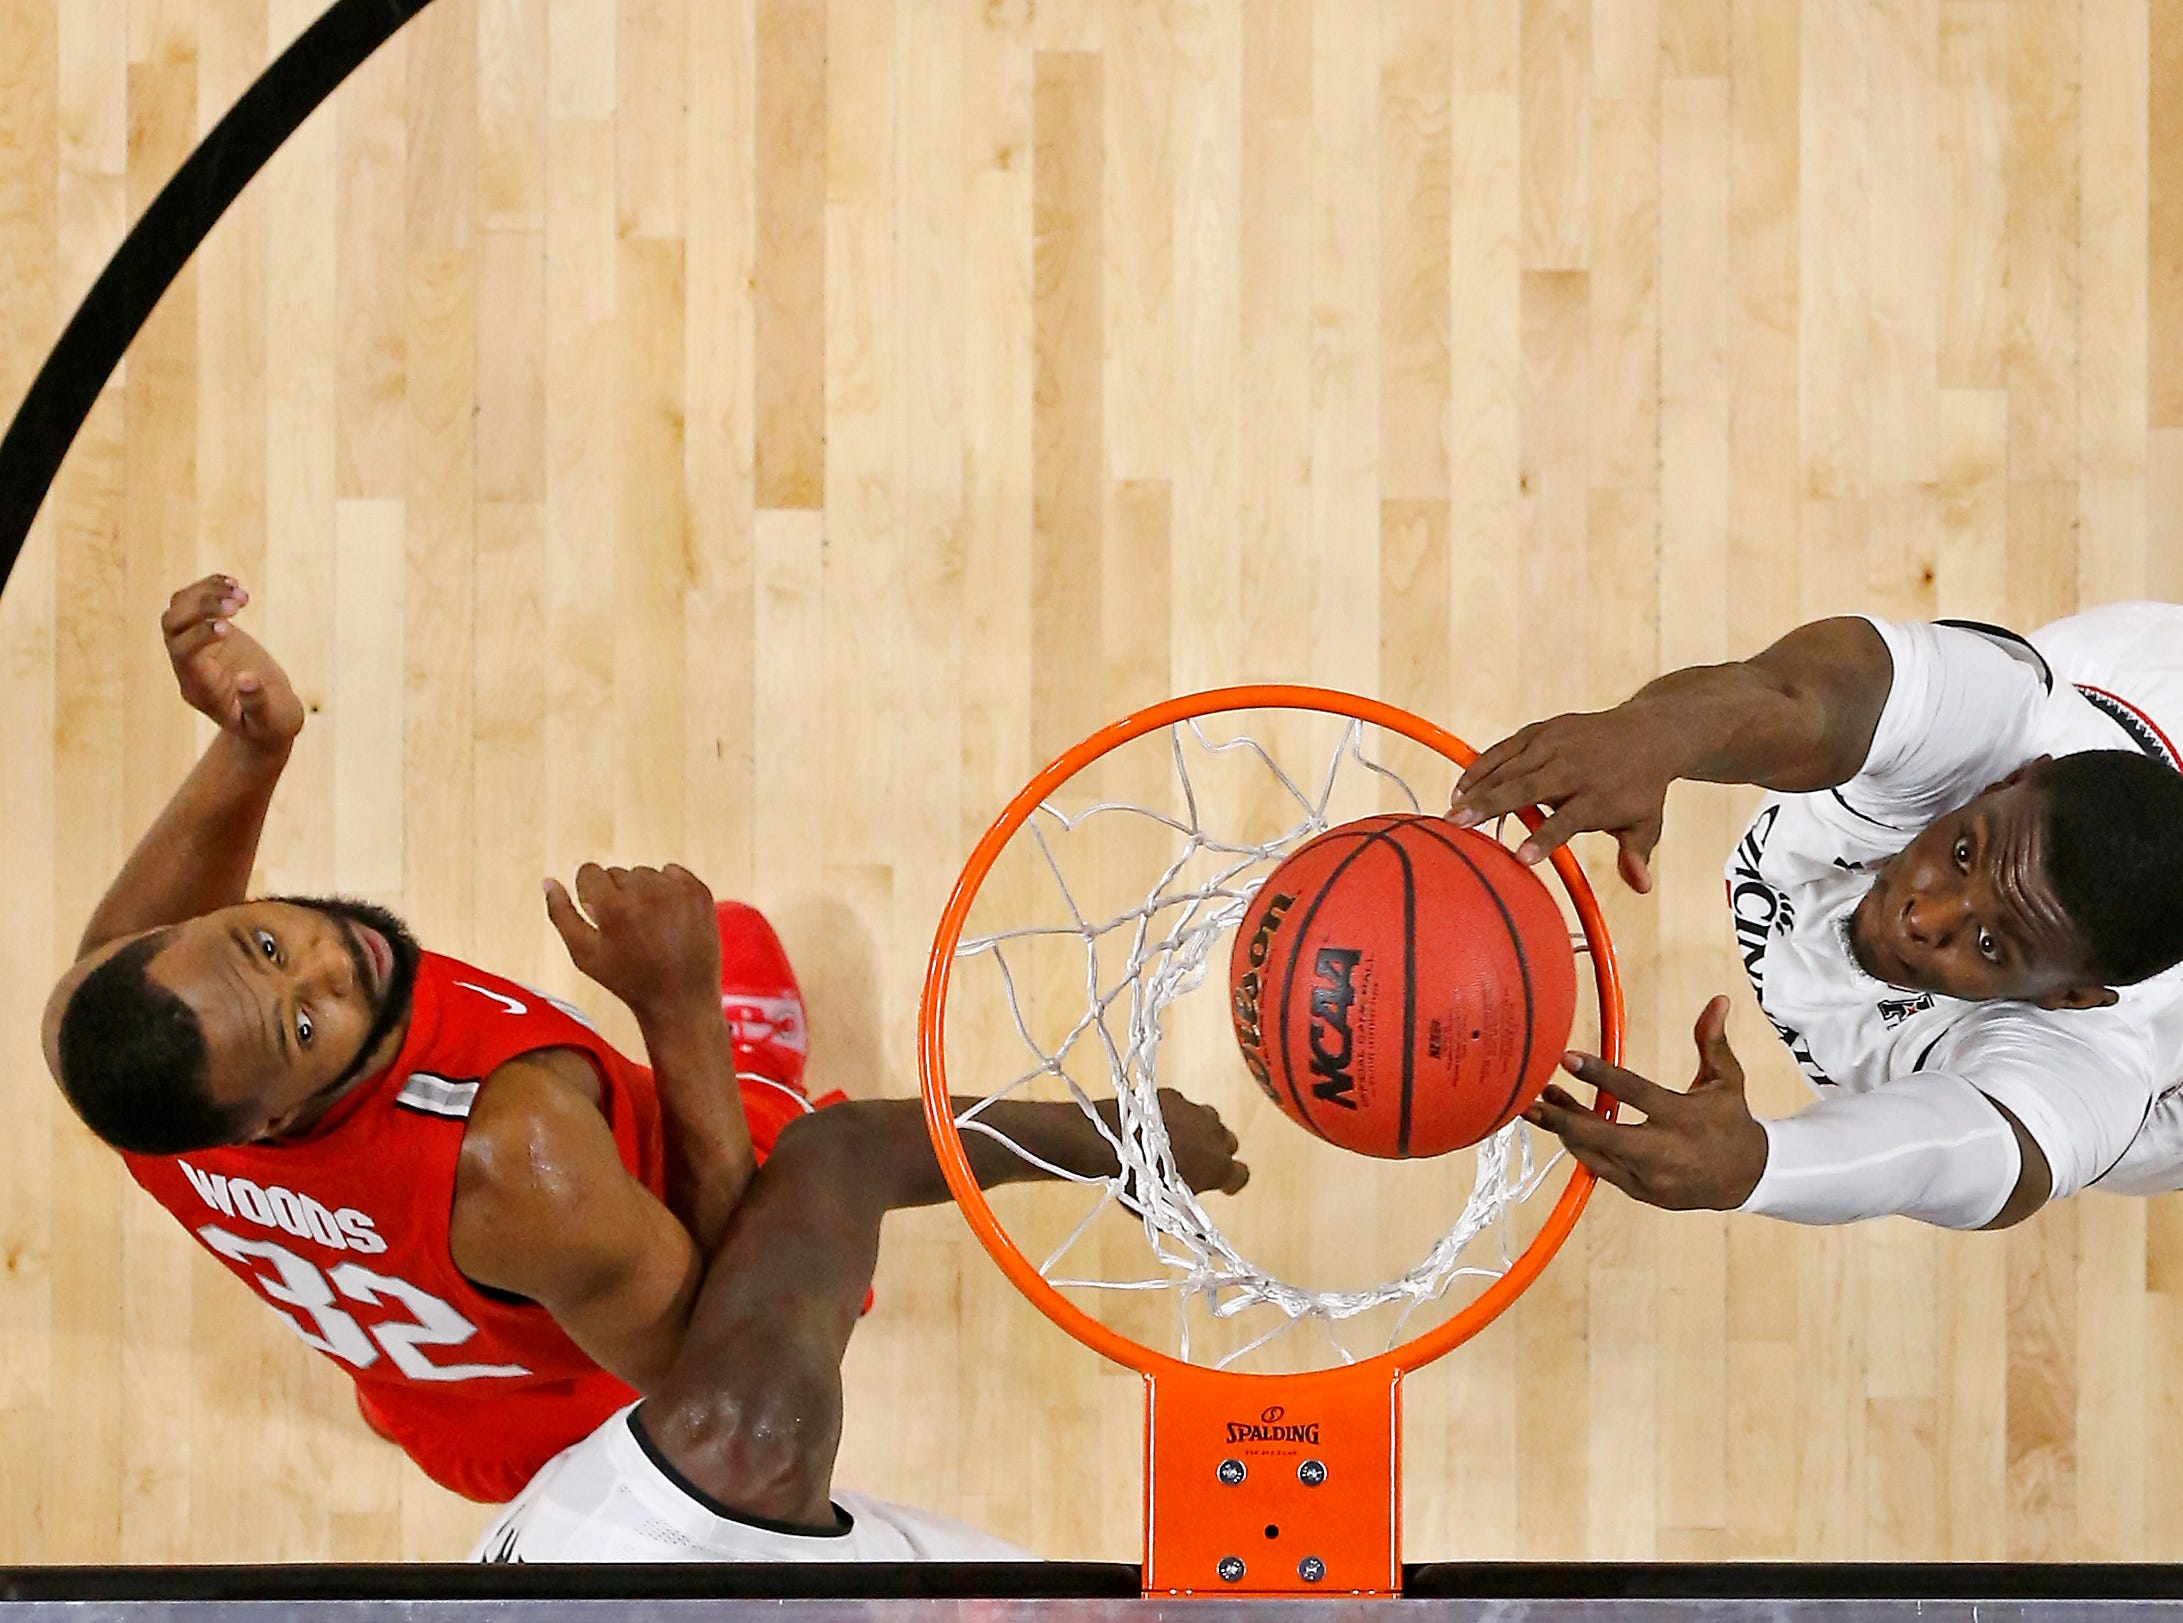 Cincinnati Bearcats forward Tre Scott (13) puts down a dunk in the second half of the NCAA basketball game between the Cincinnati Bearcats and the Ohio State Buckeyes at Fifth Third Arena in Cincinnati on Wednesday, Nov. 7, 2018. The Bearcats opened the season 0-1 with a 64-56 loss the Ohio State.